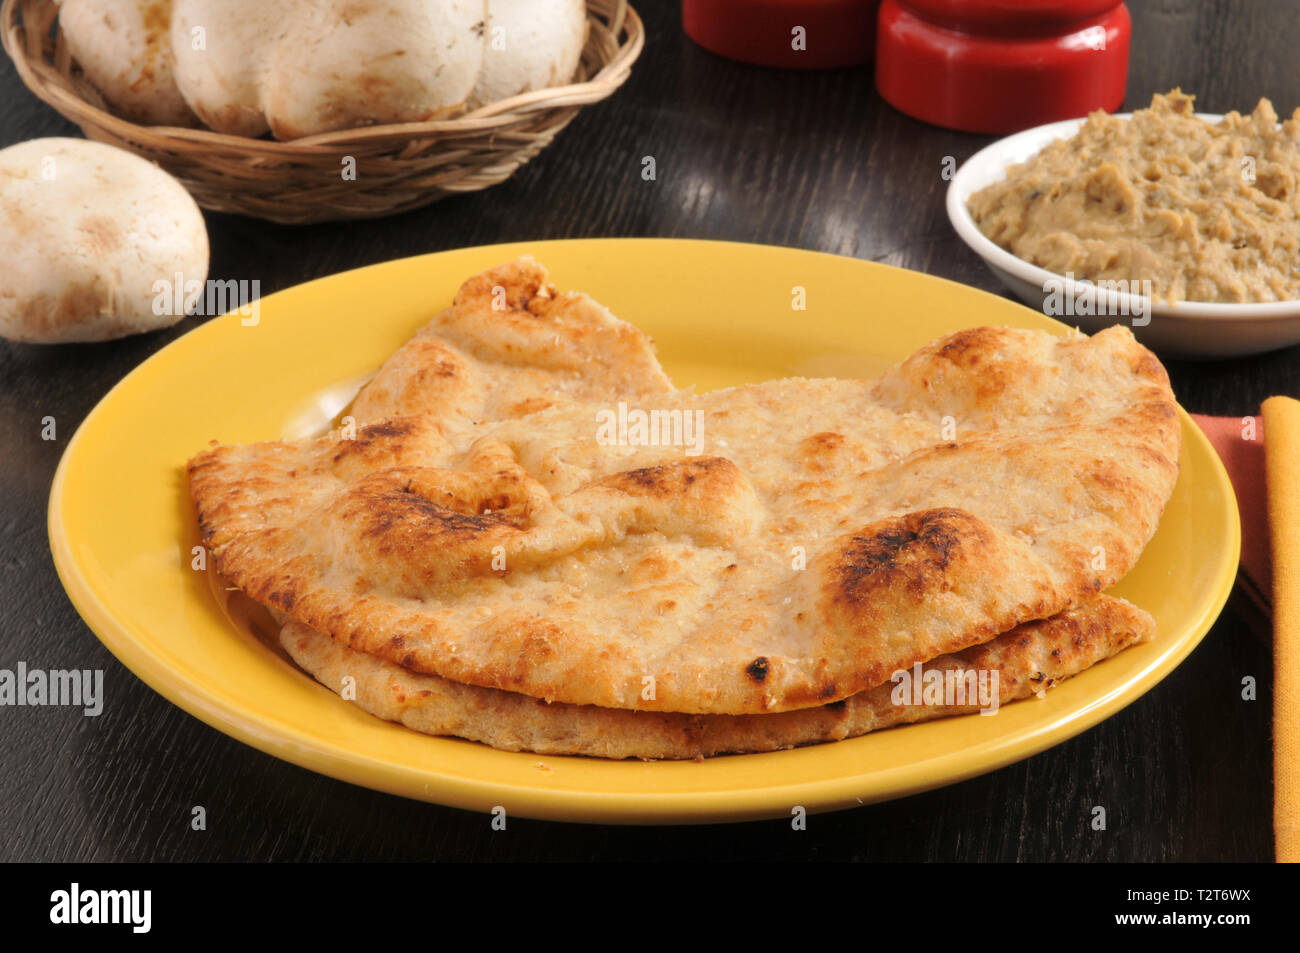 Tandoor baked naan bread on a plate with a bowl of hummus - Stock Image